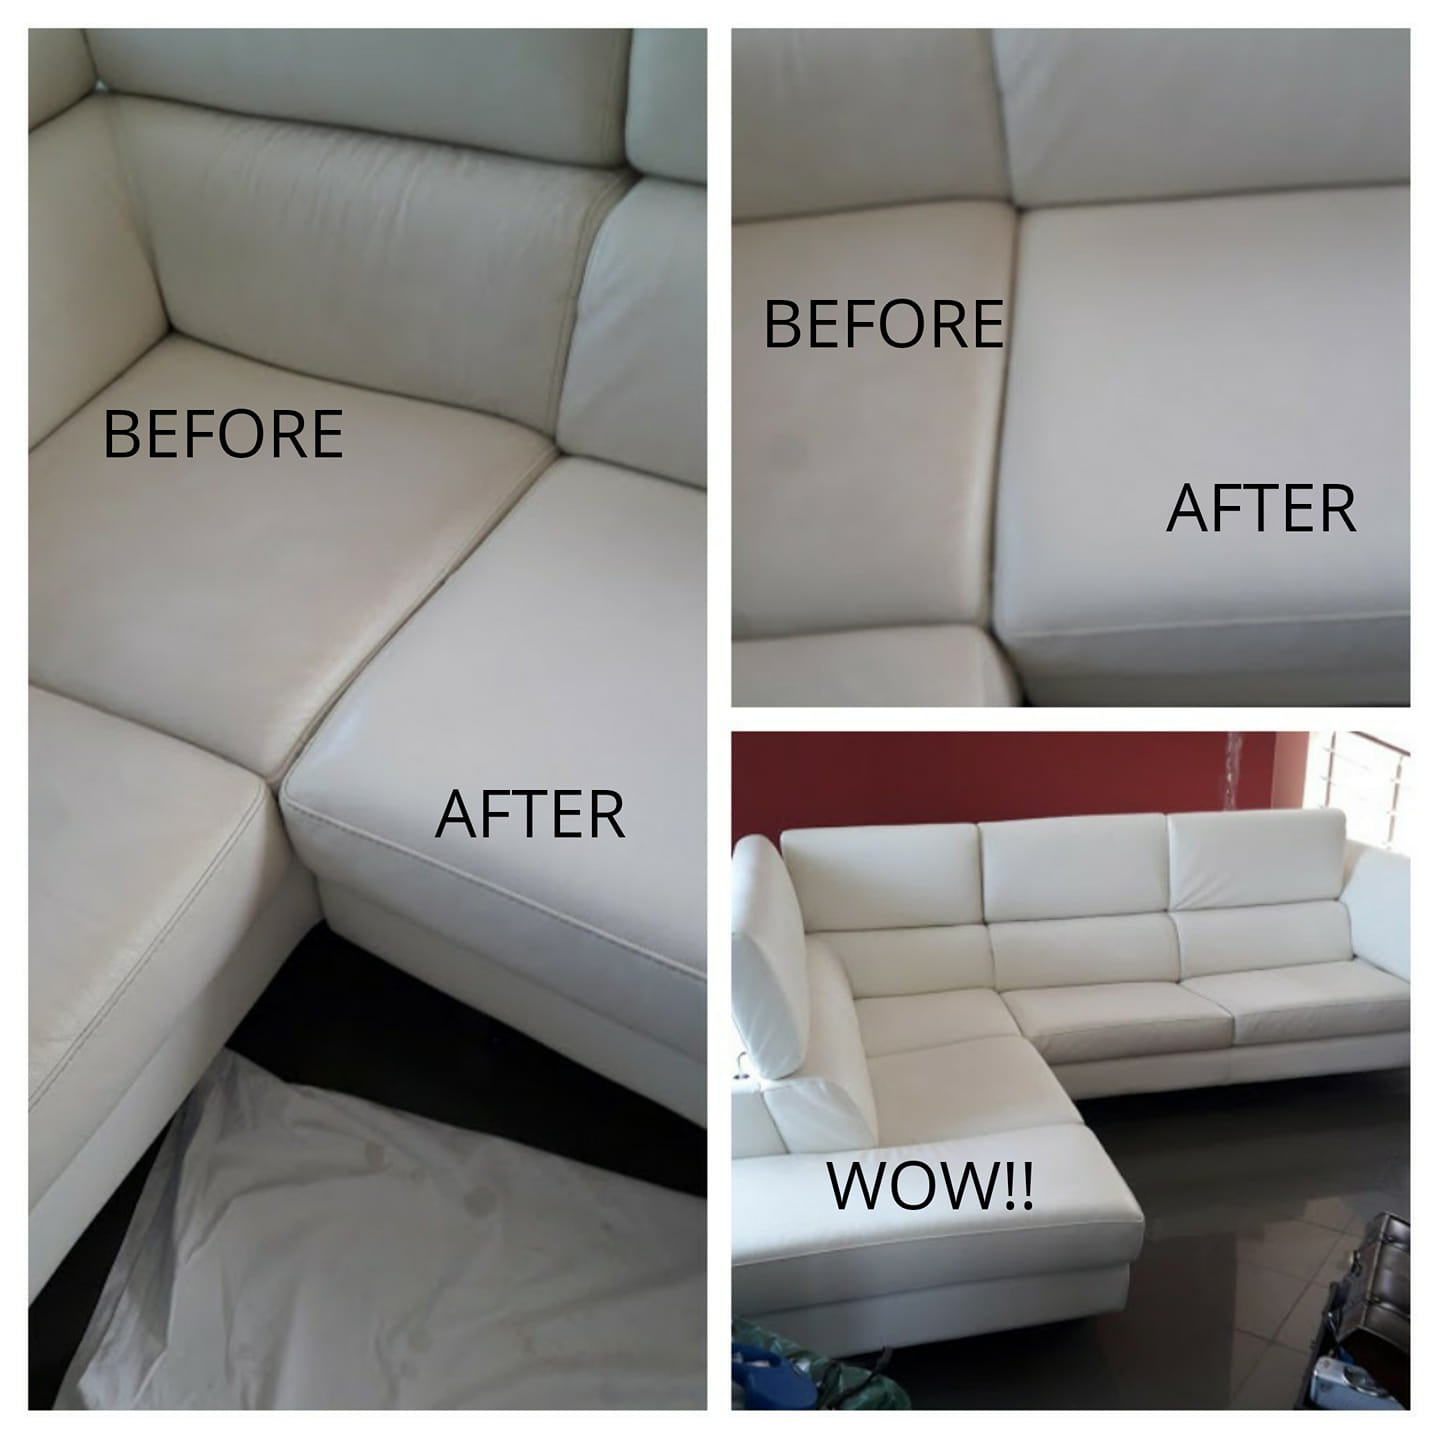 Before / After sofa